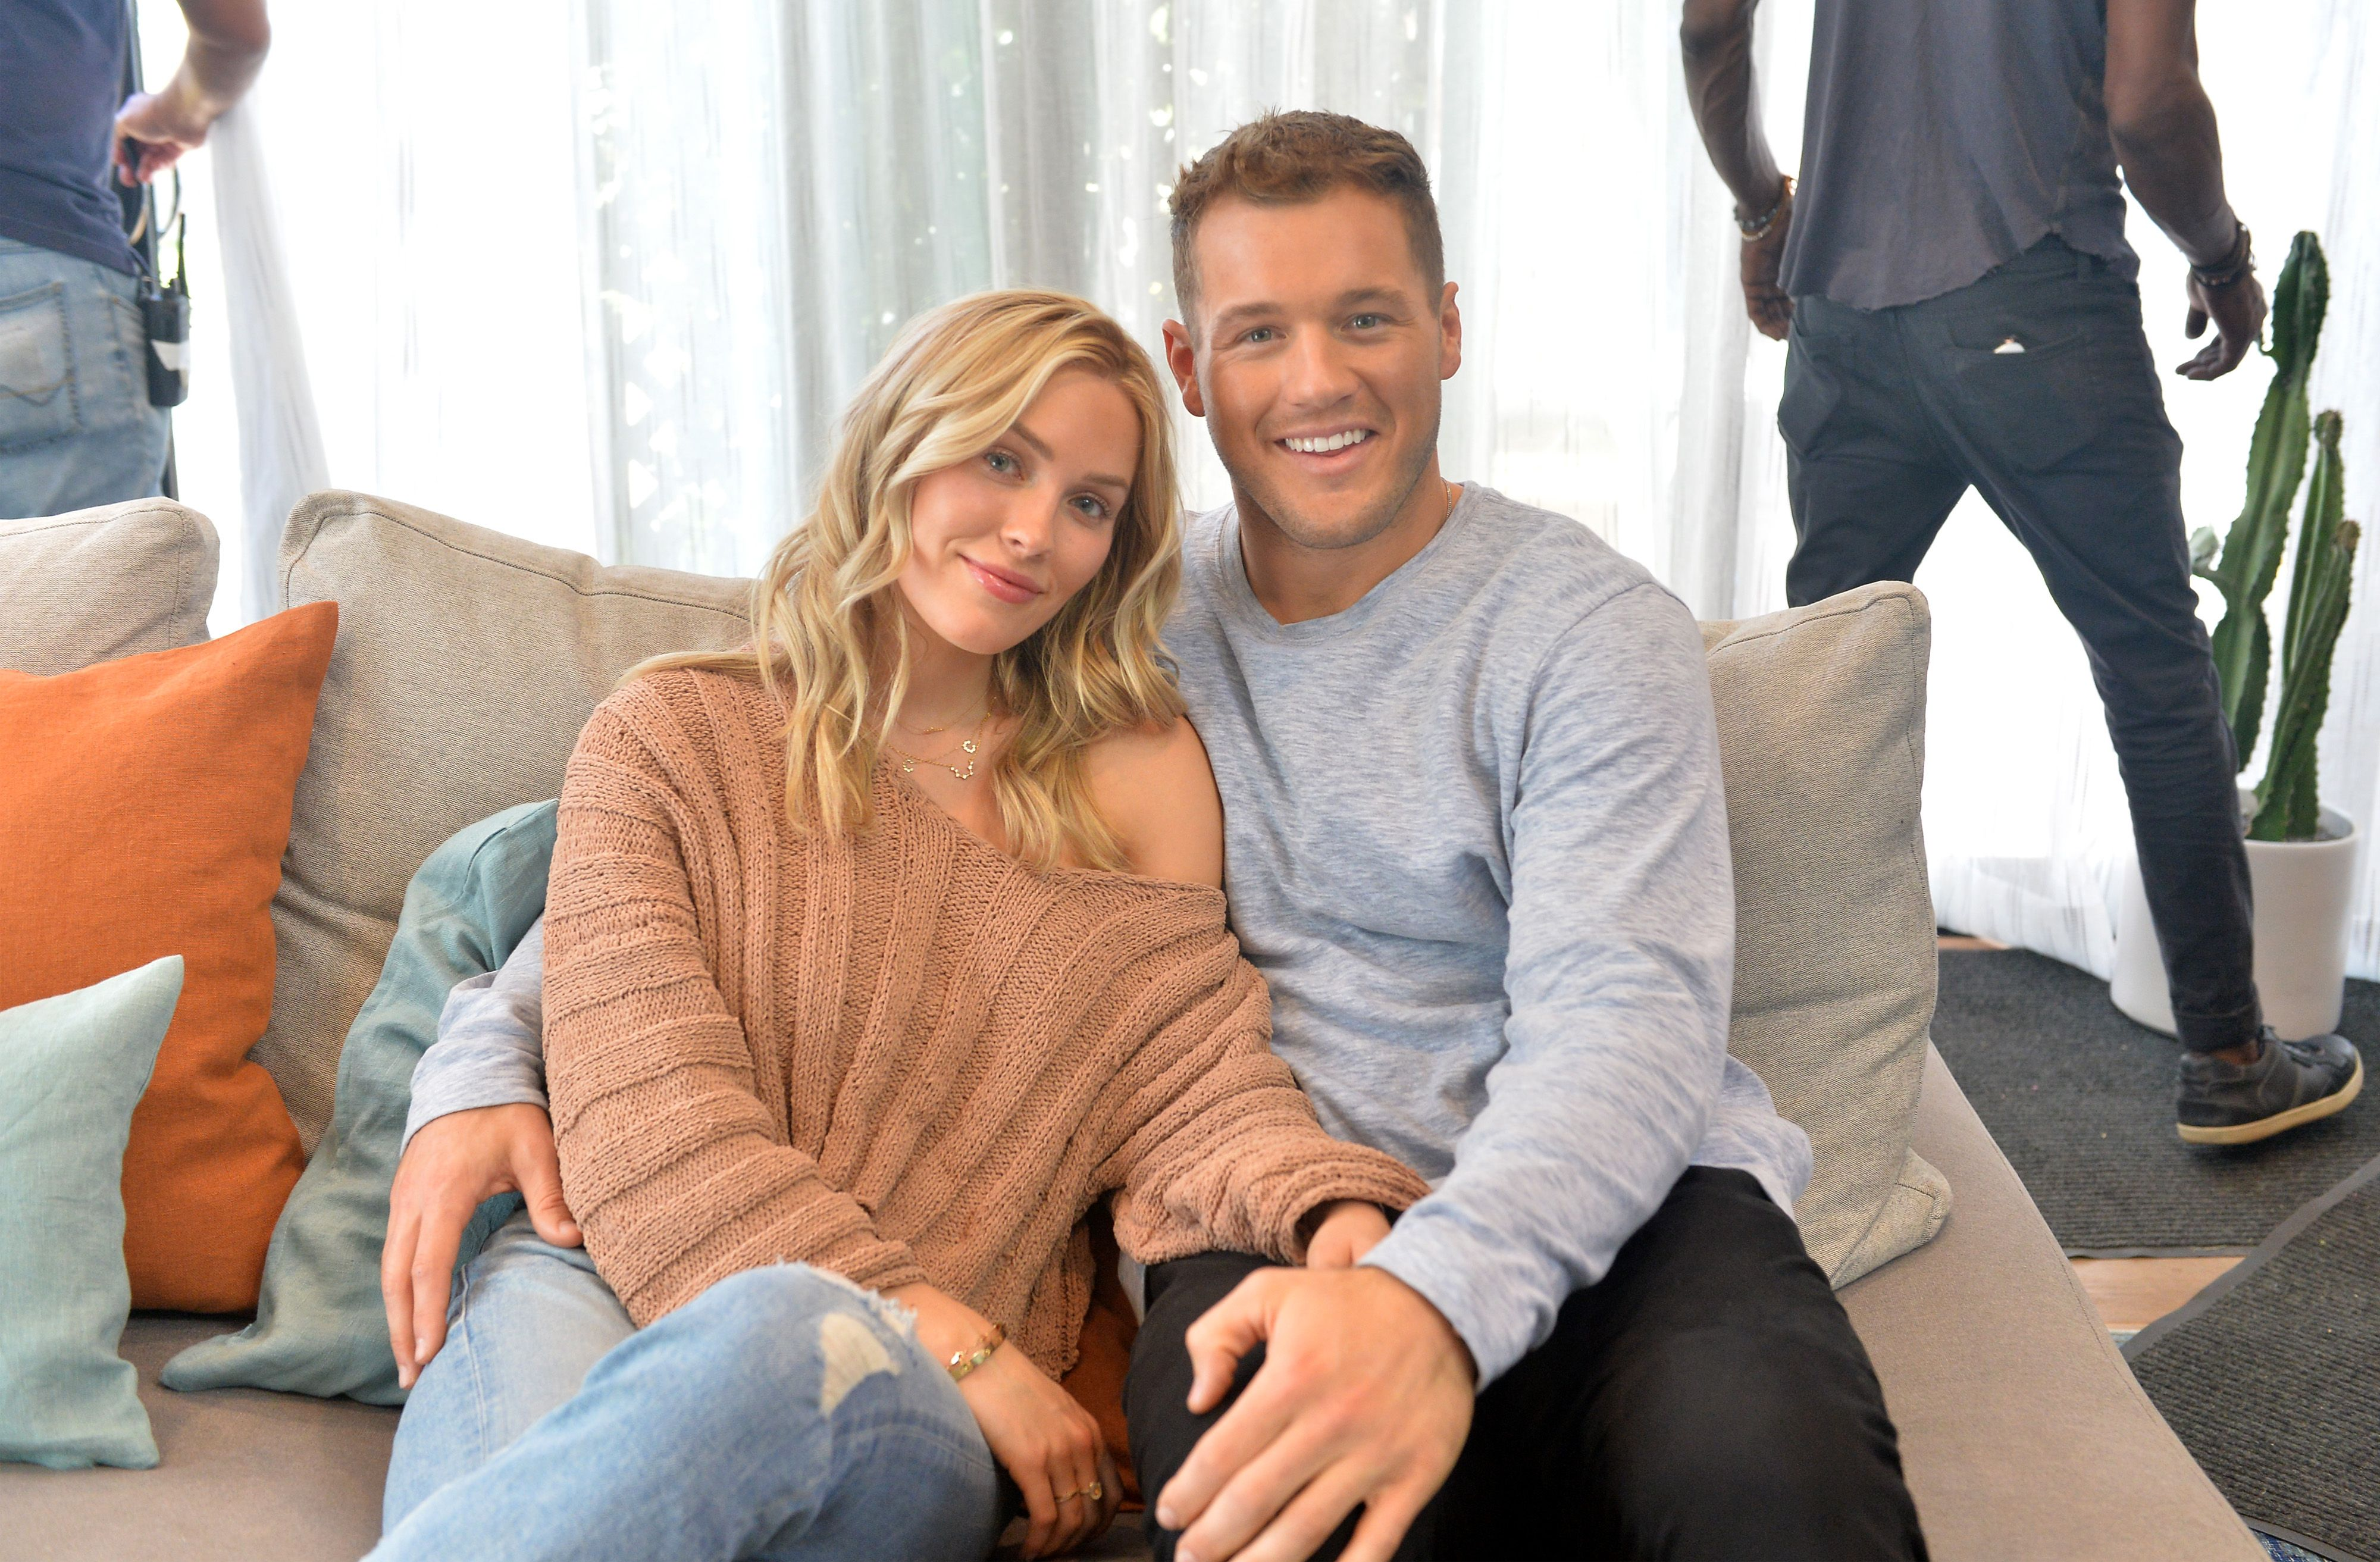 Cassie Randolph and Colton Underwood sitting on a couch